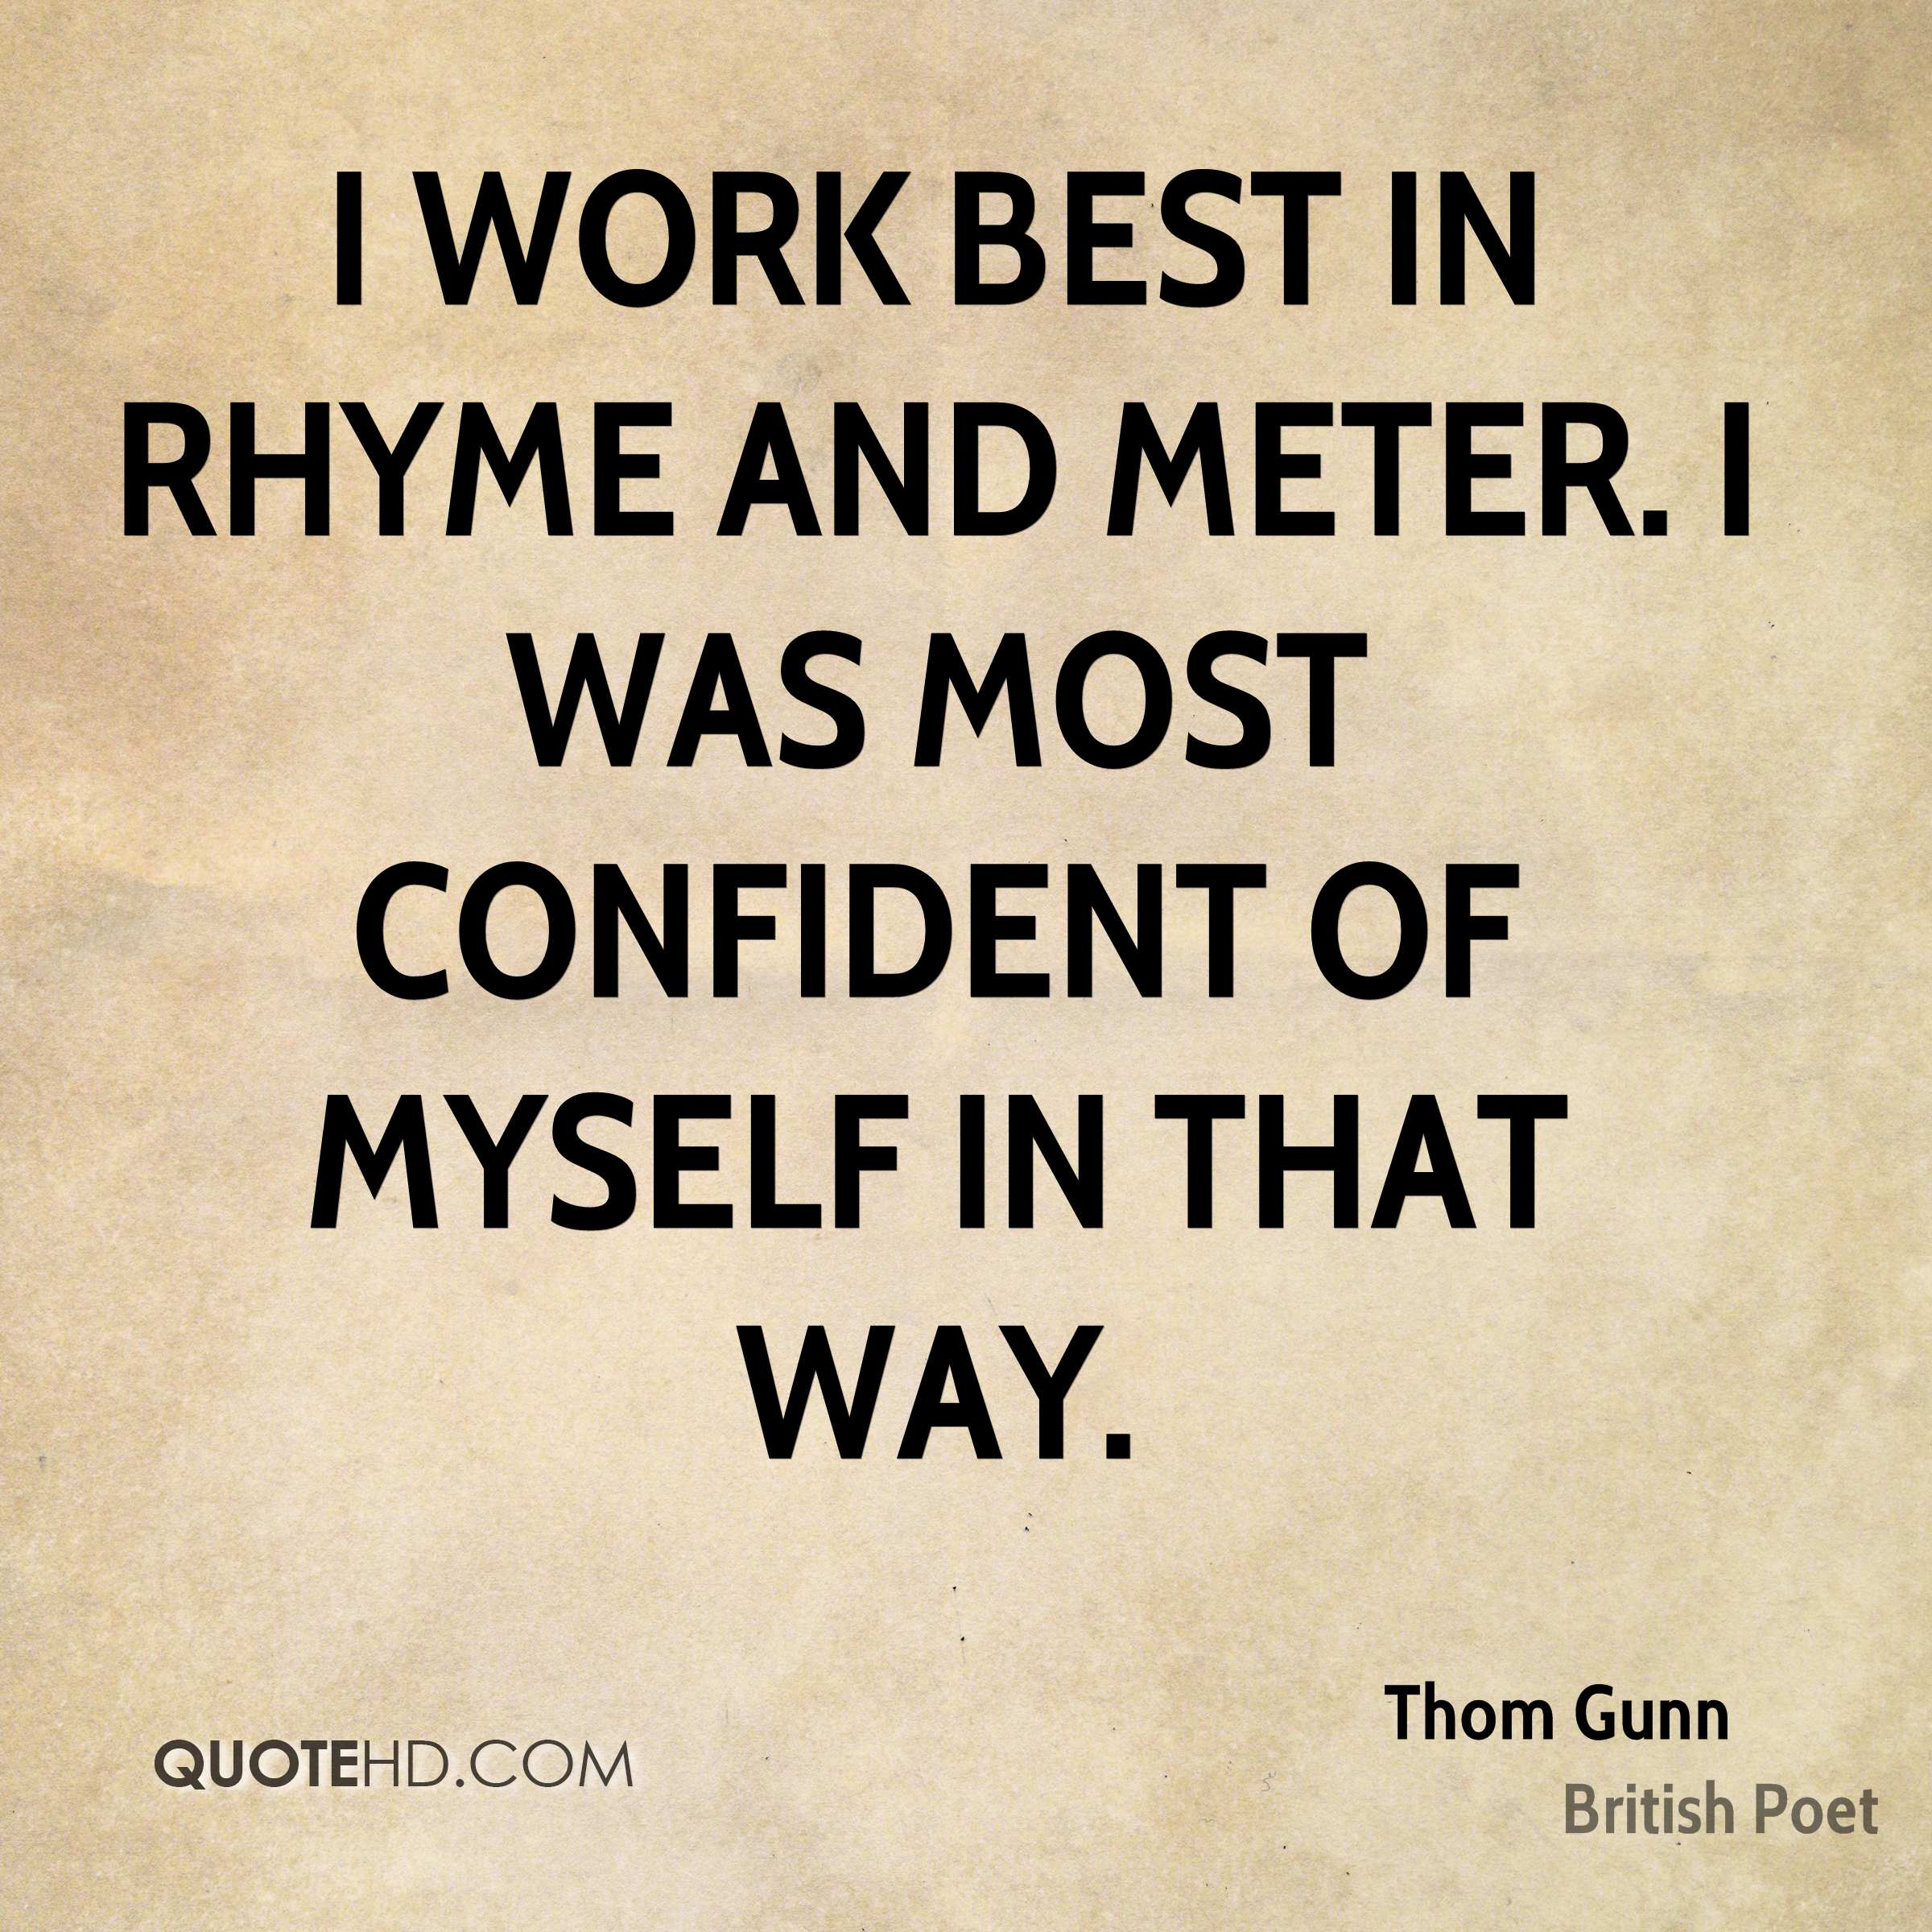 Confidence Quotes That Rhyme: Thom Gunn Quotes